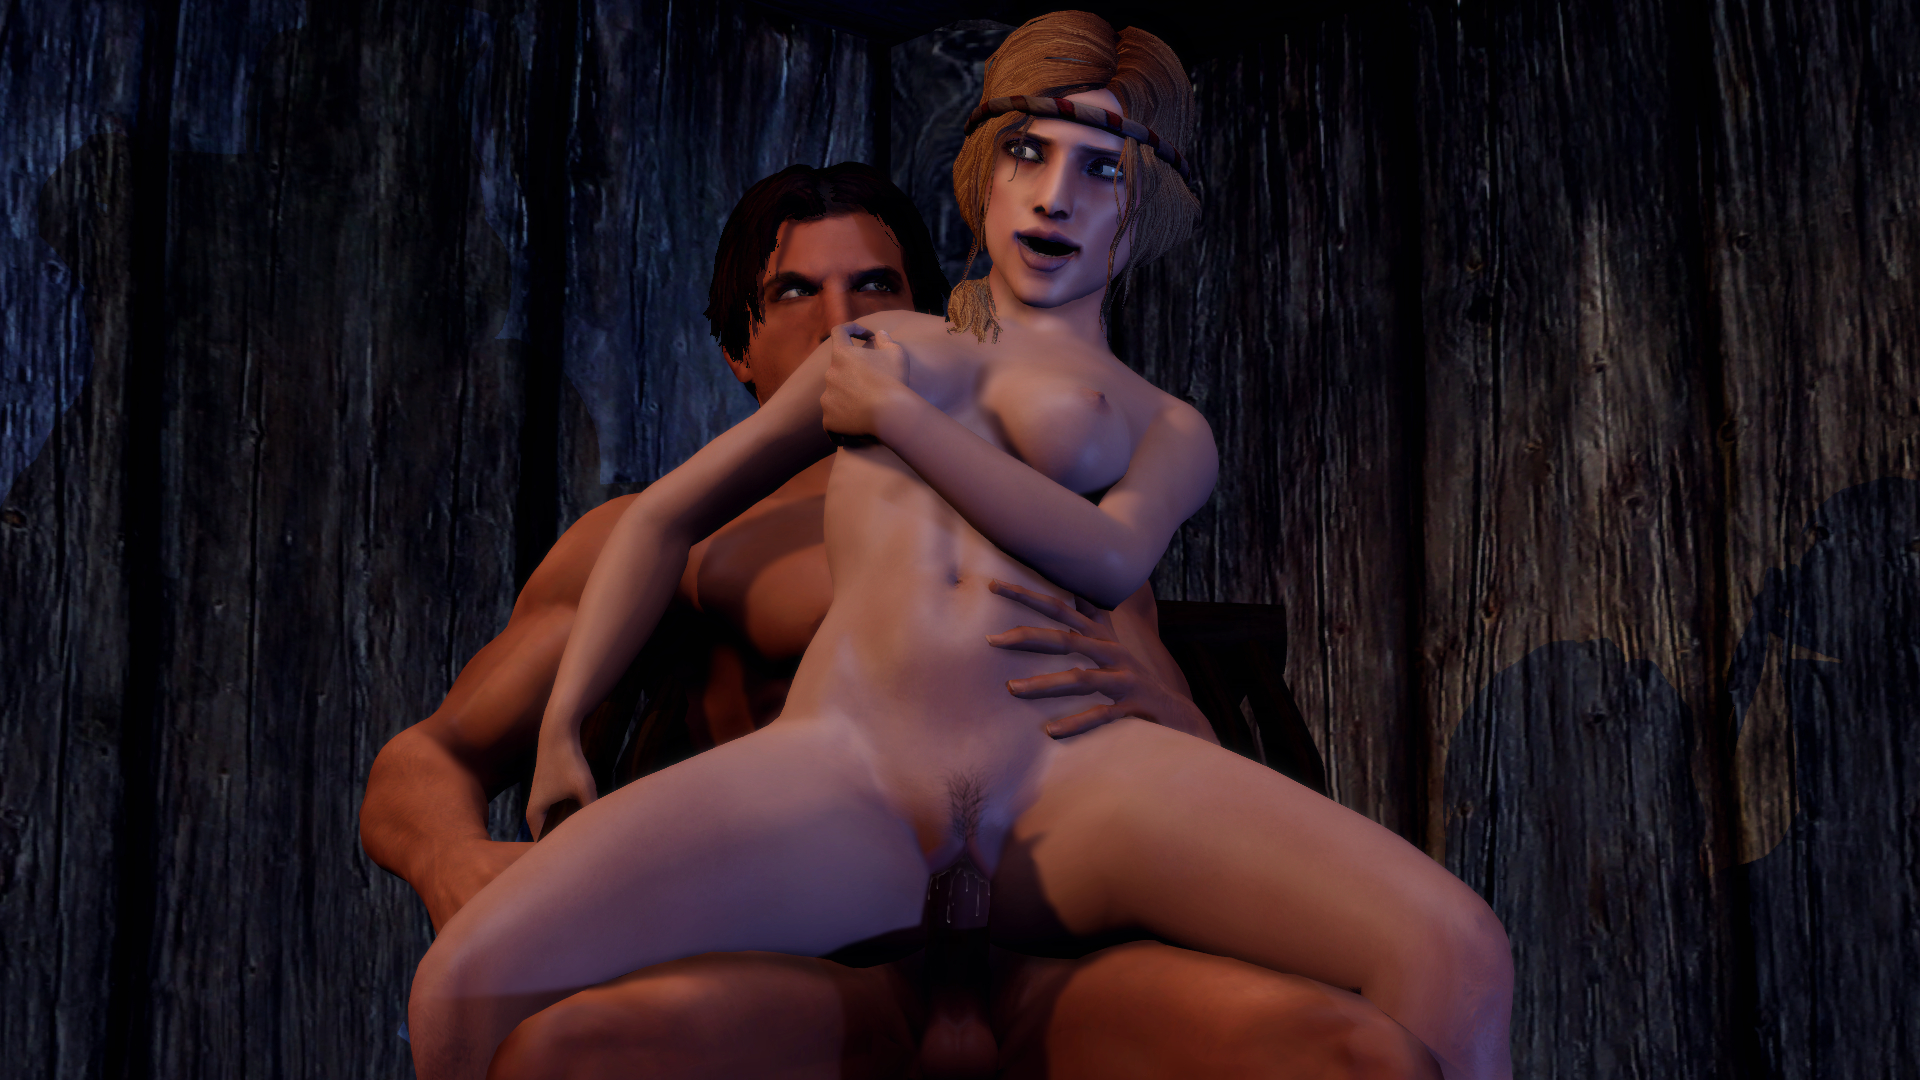 Assassin's creed 2 nude mod sexy vids